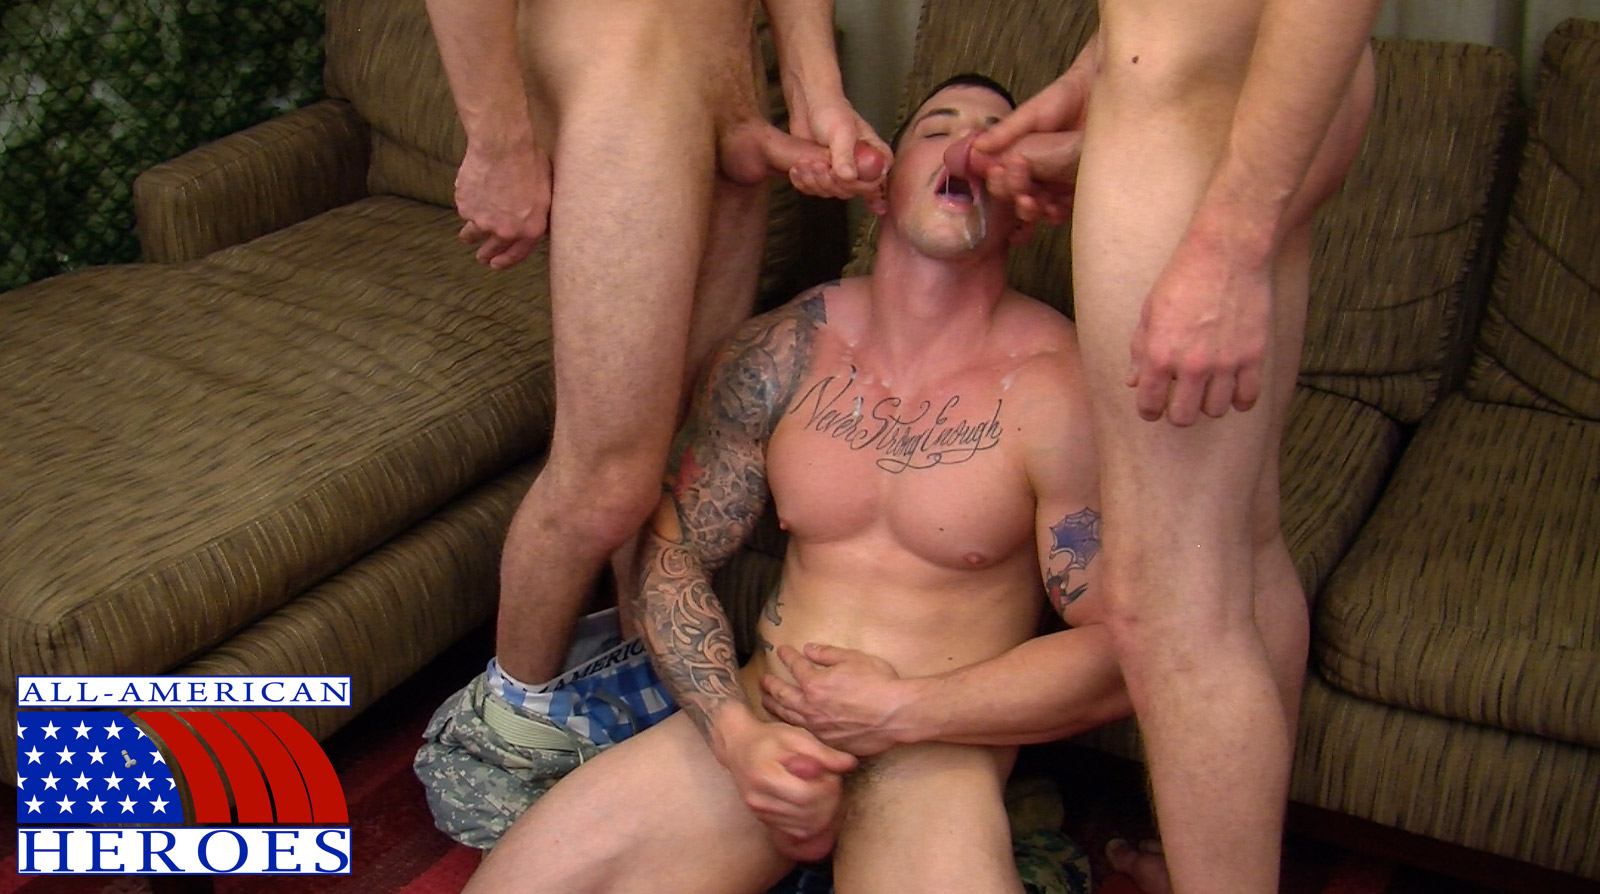 All-American-Heroes-Sergeant-Slate-Triple-fucking-big-cocks-Army-guys-Amateur-Gay-Porn-14 Two Real Army Privates Fuck Their Muscle Sergeant and Cum In His Mouth